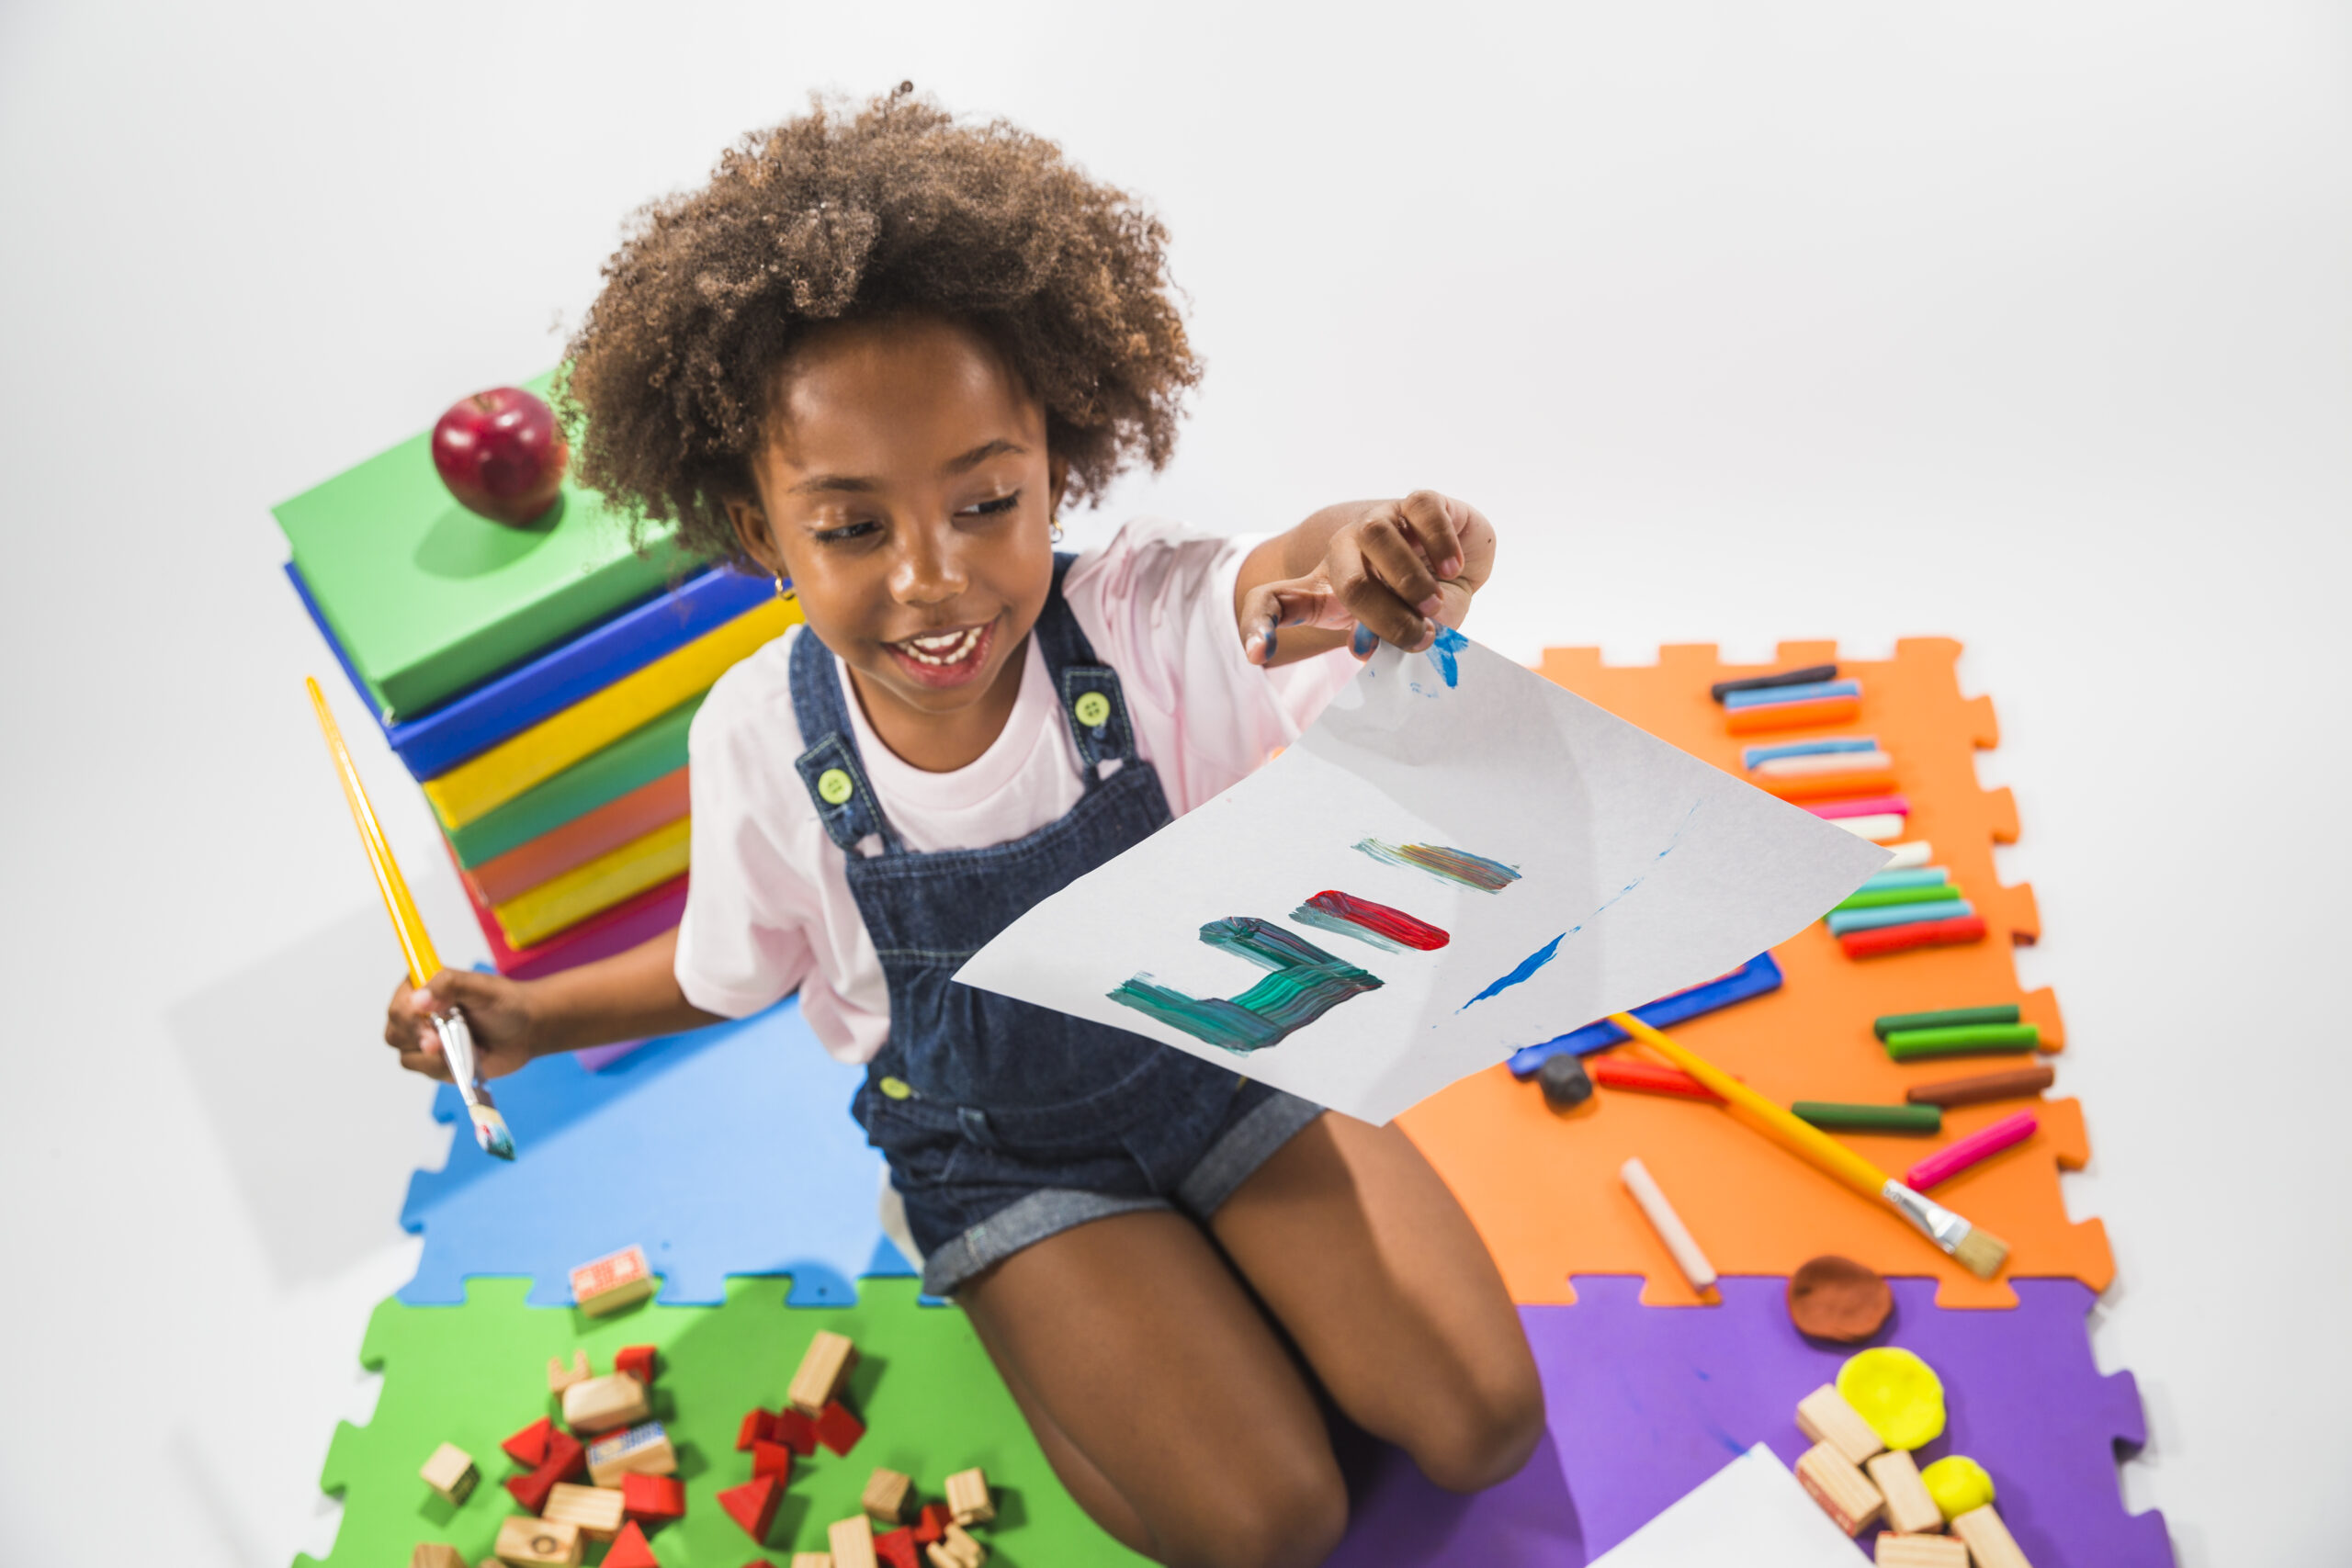 girl-with-painted-paper-play-mat-studio